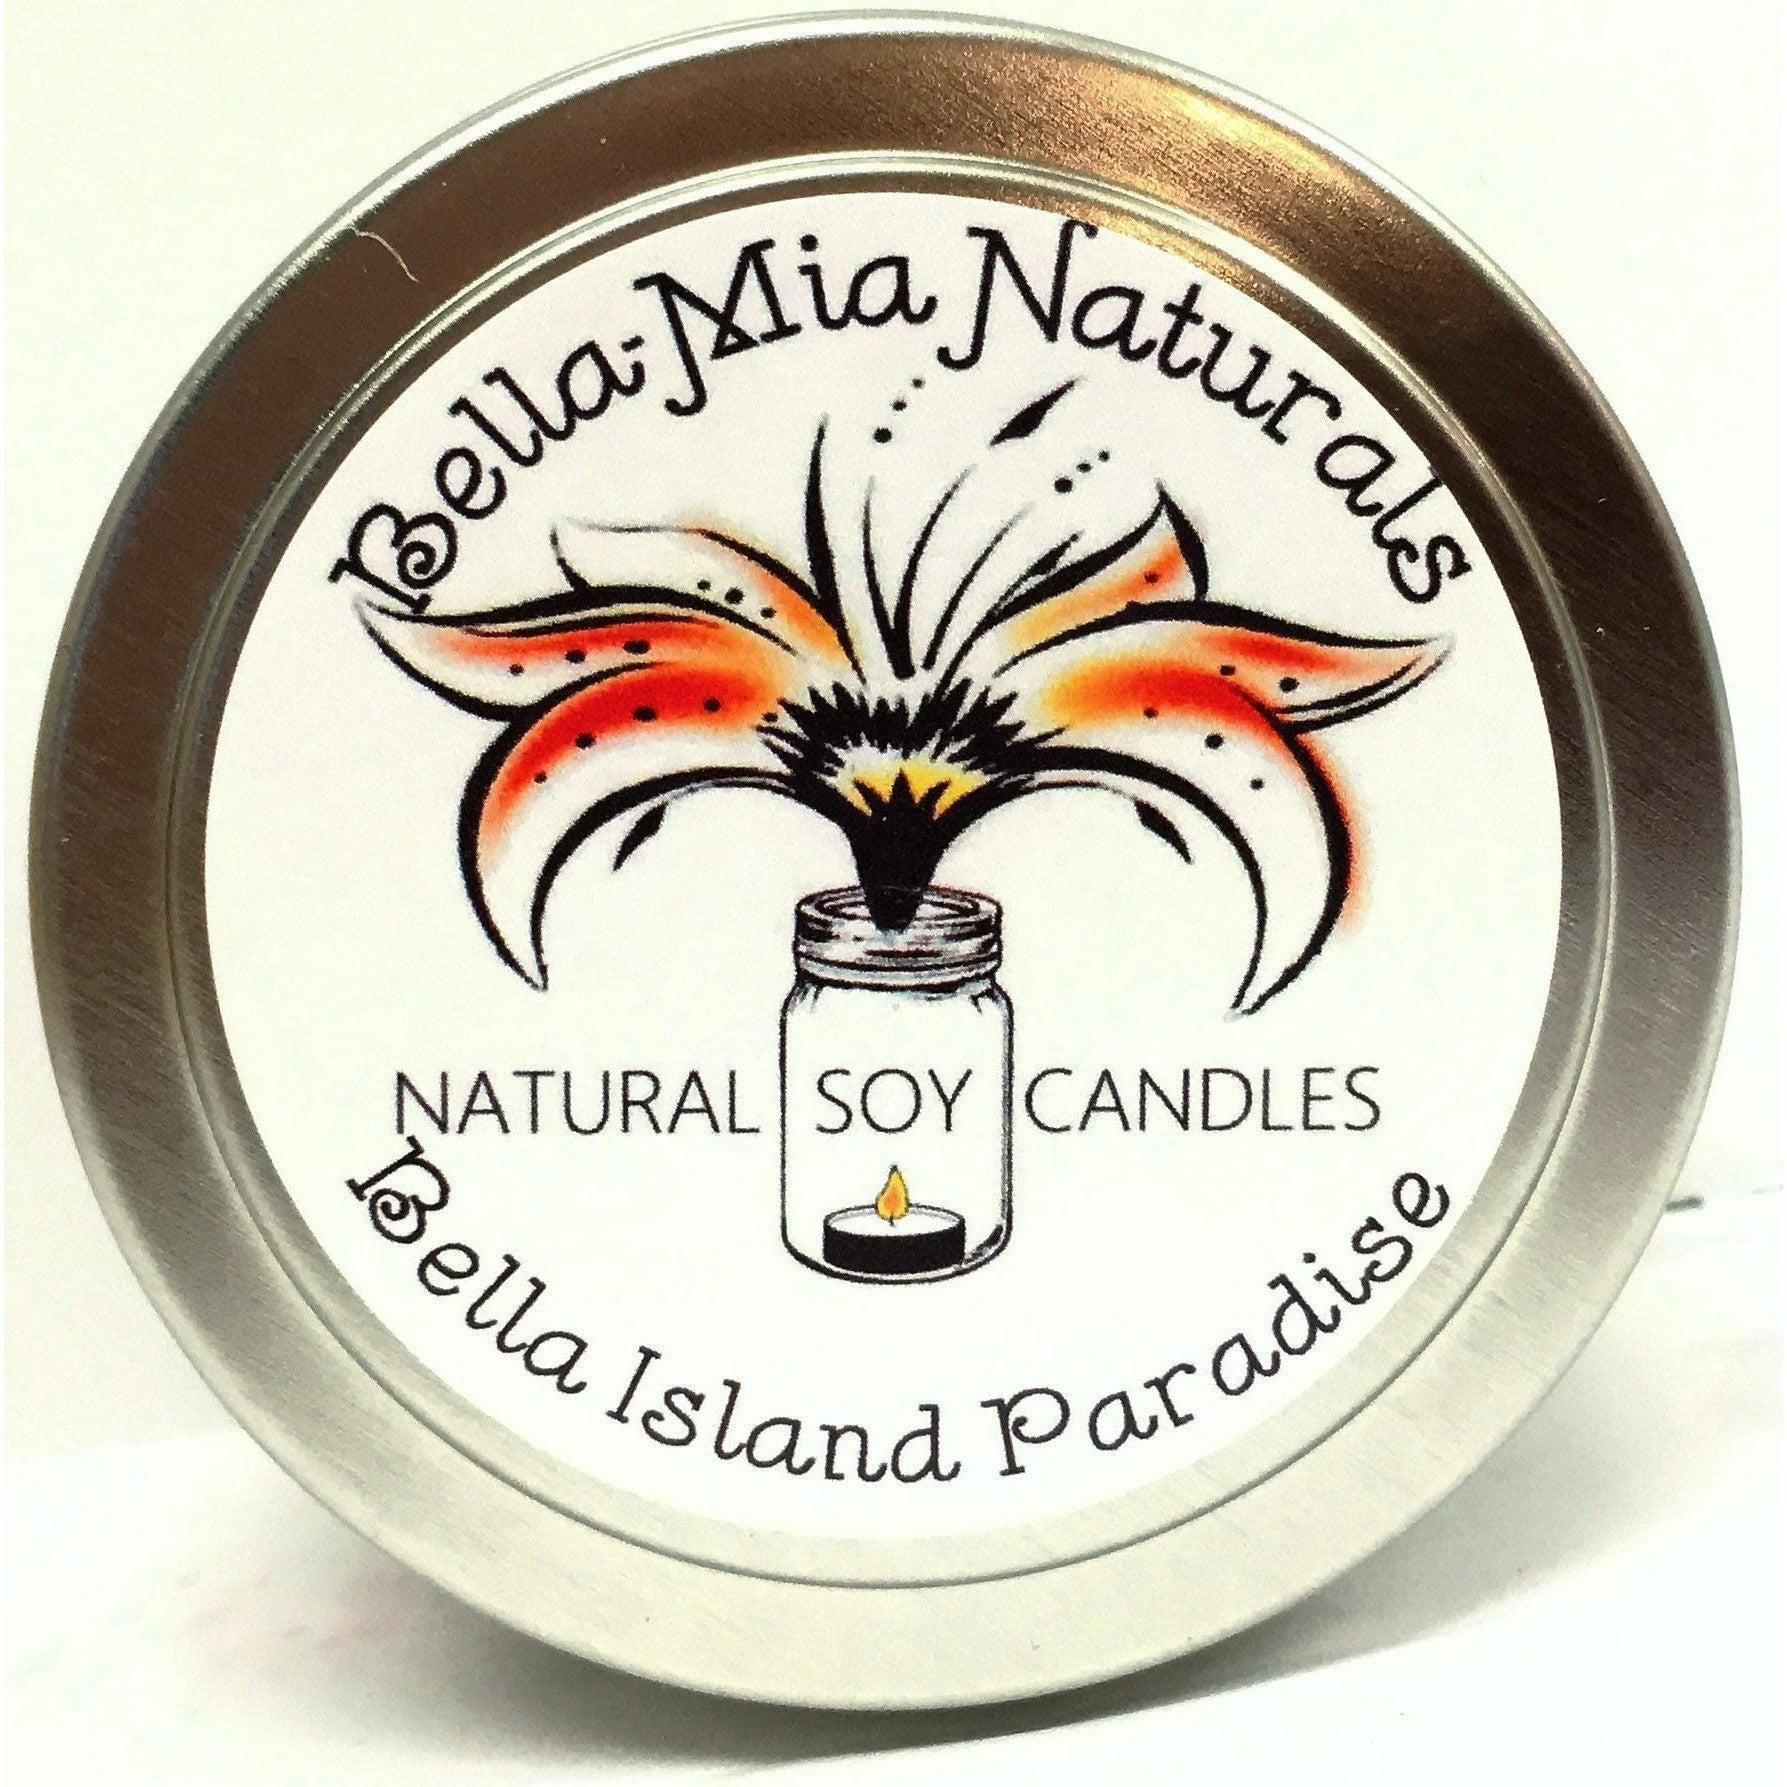 Bella Island Paradise Natural Hand Poured Soy Candles - Tin - Bella-Mia Naturals All Natural Soy Candles & Lip Balms - 6